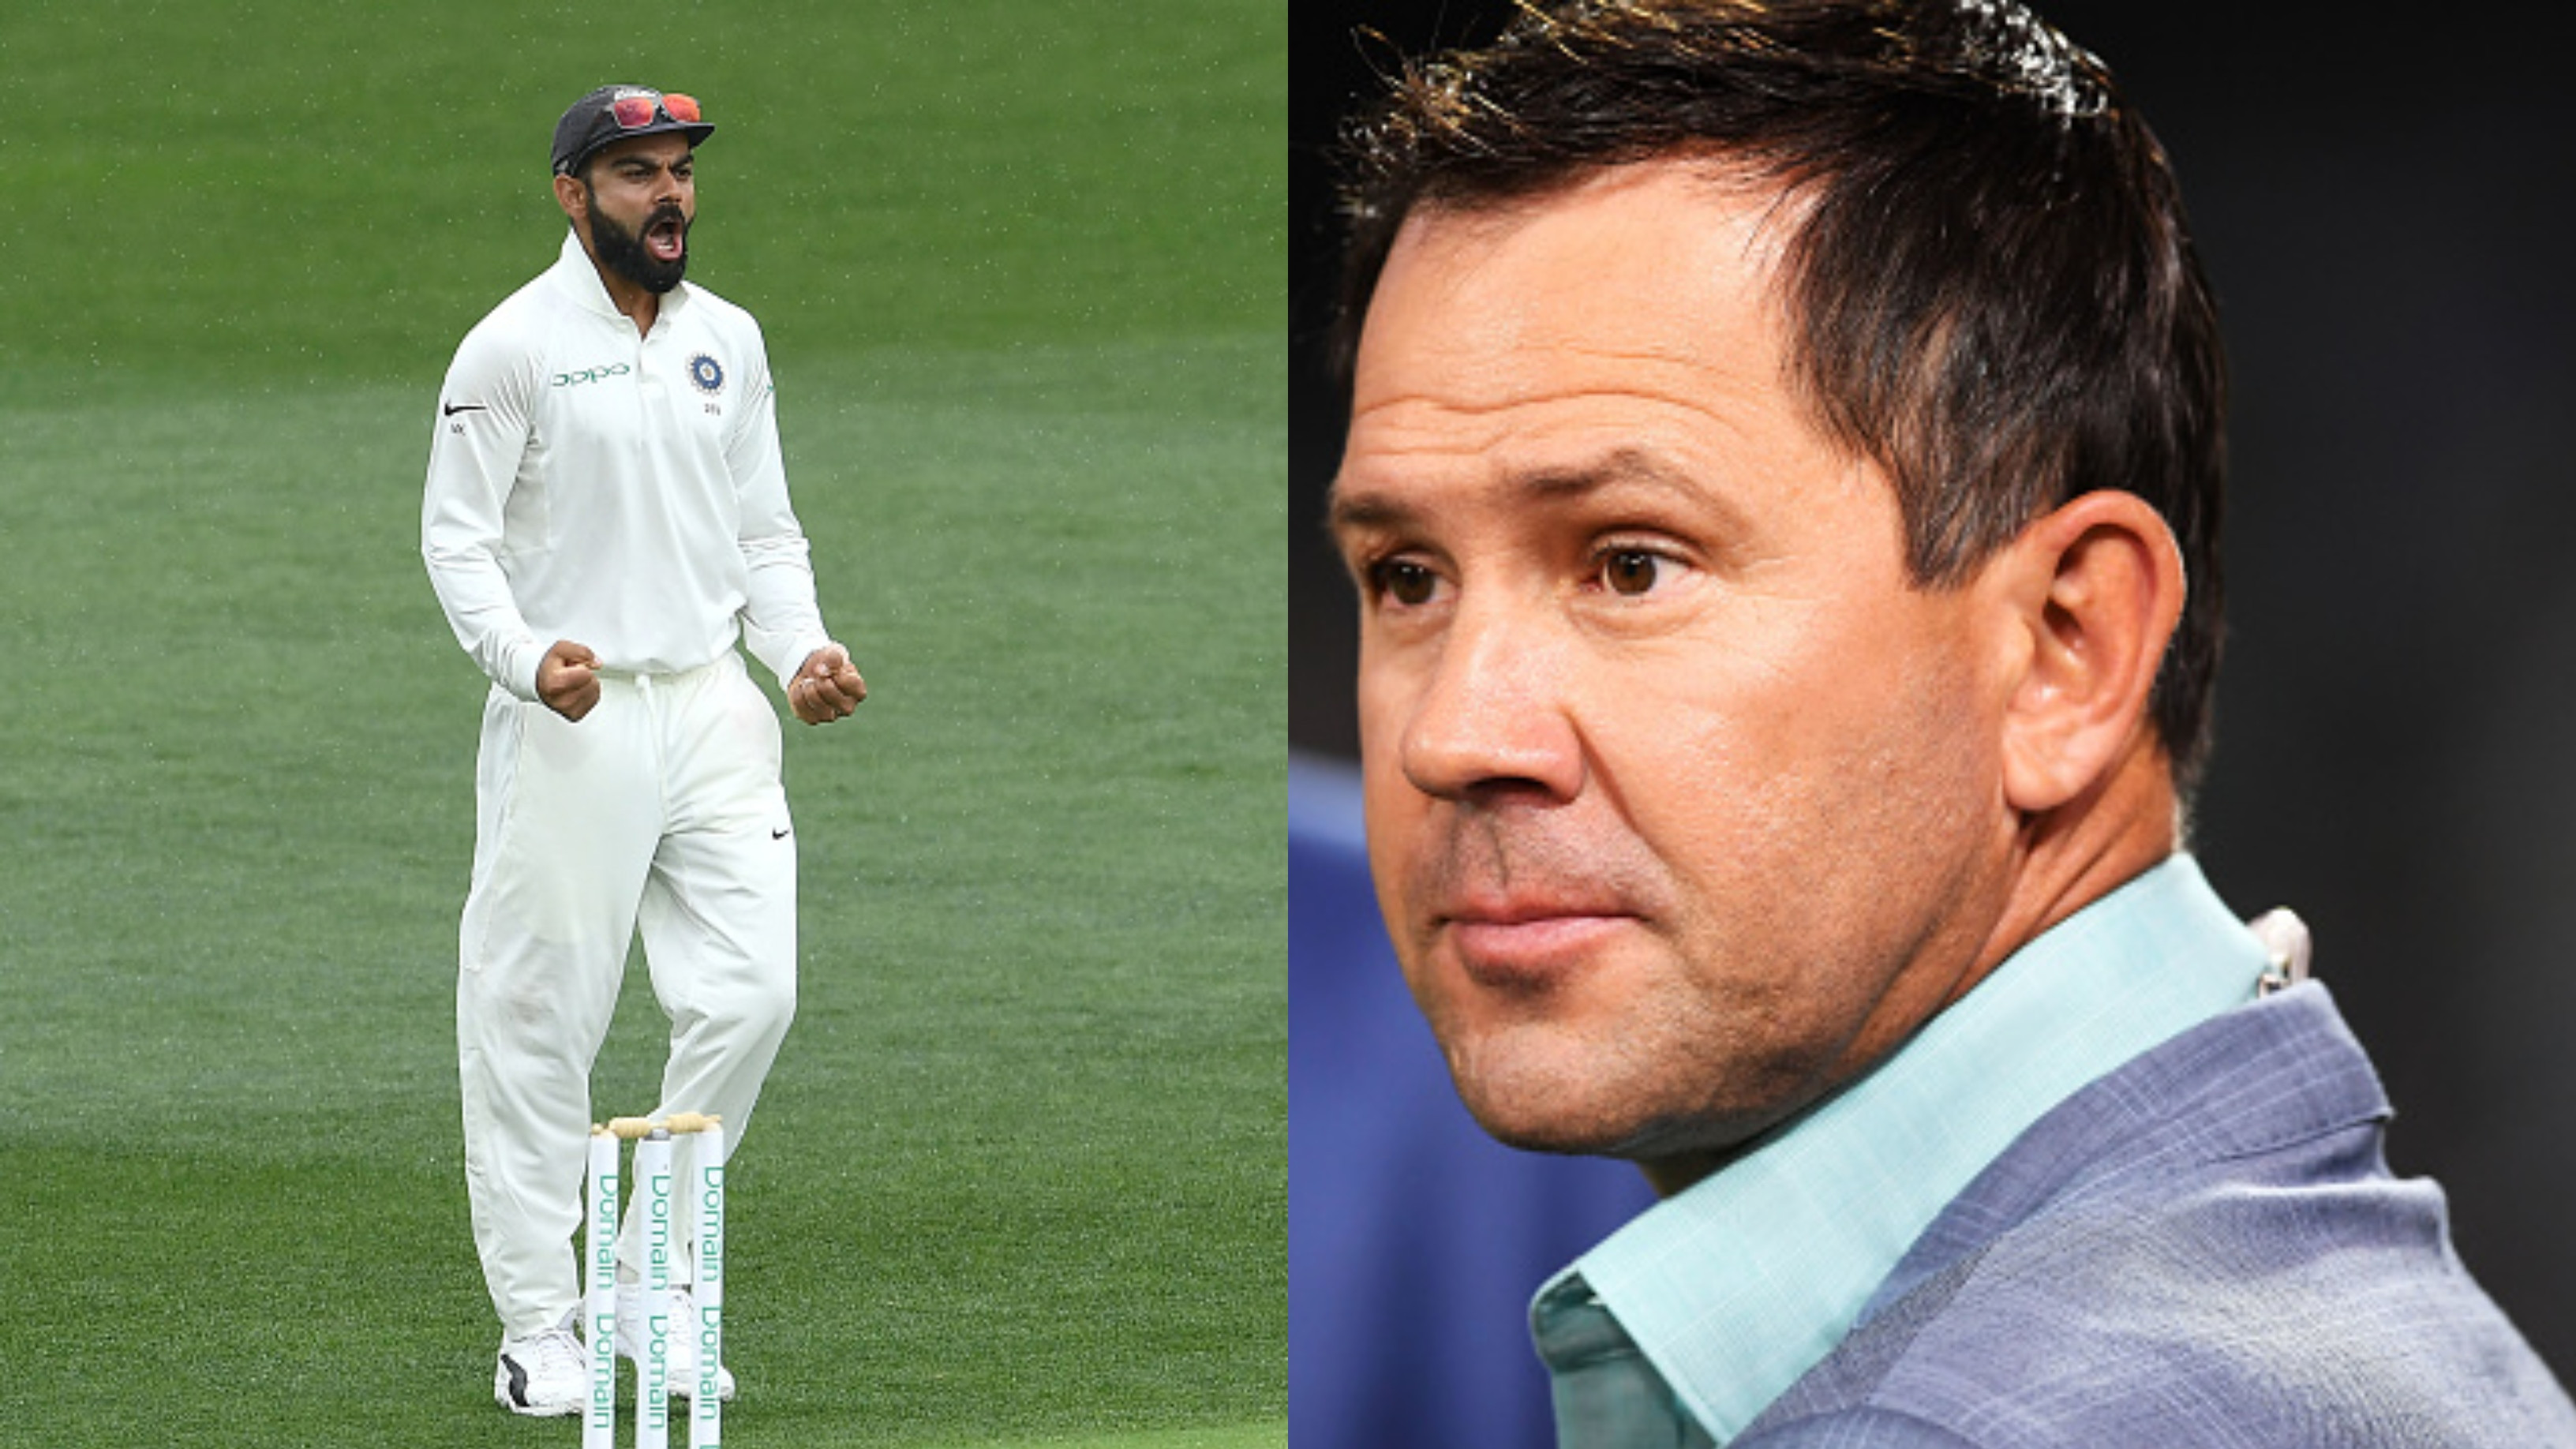 AUS v IND 2018-19: I didn't like seeing Virat Kohli getting booed at Adelaide, says Ricky Ponting